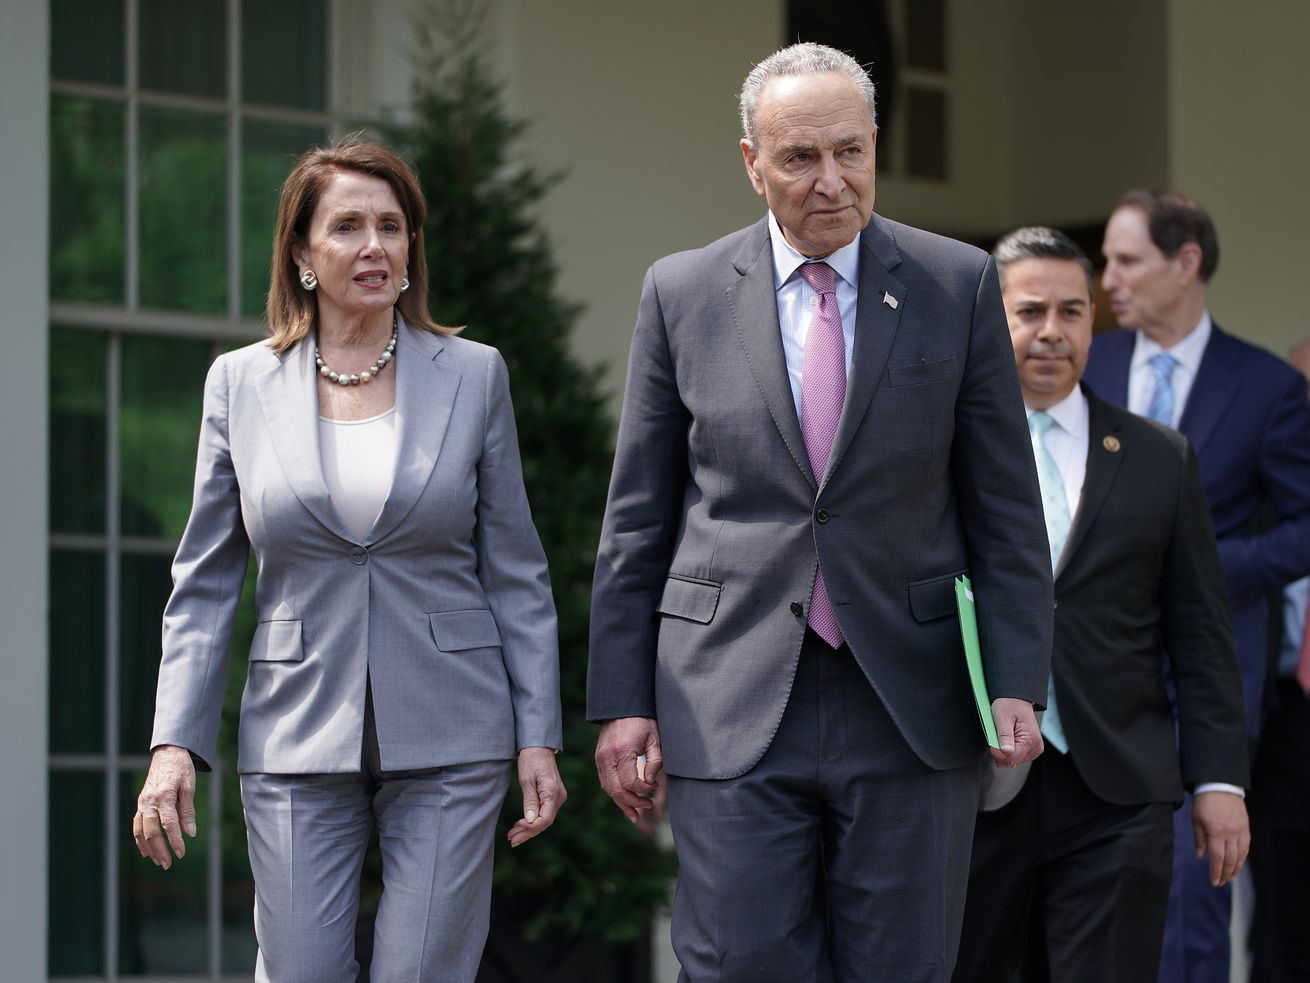 Speaker of the House Nancy Pelosi and Senate Minority Leader Chuck Schumer lead fellow congressional Democrats out of the White House following a meeting with President Donald Trump on infrastructure.